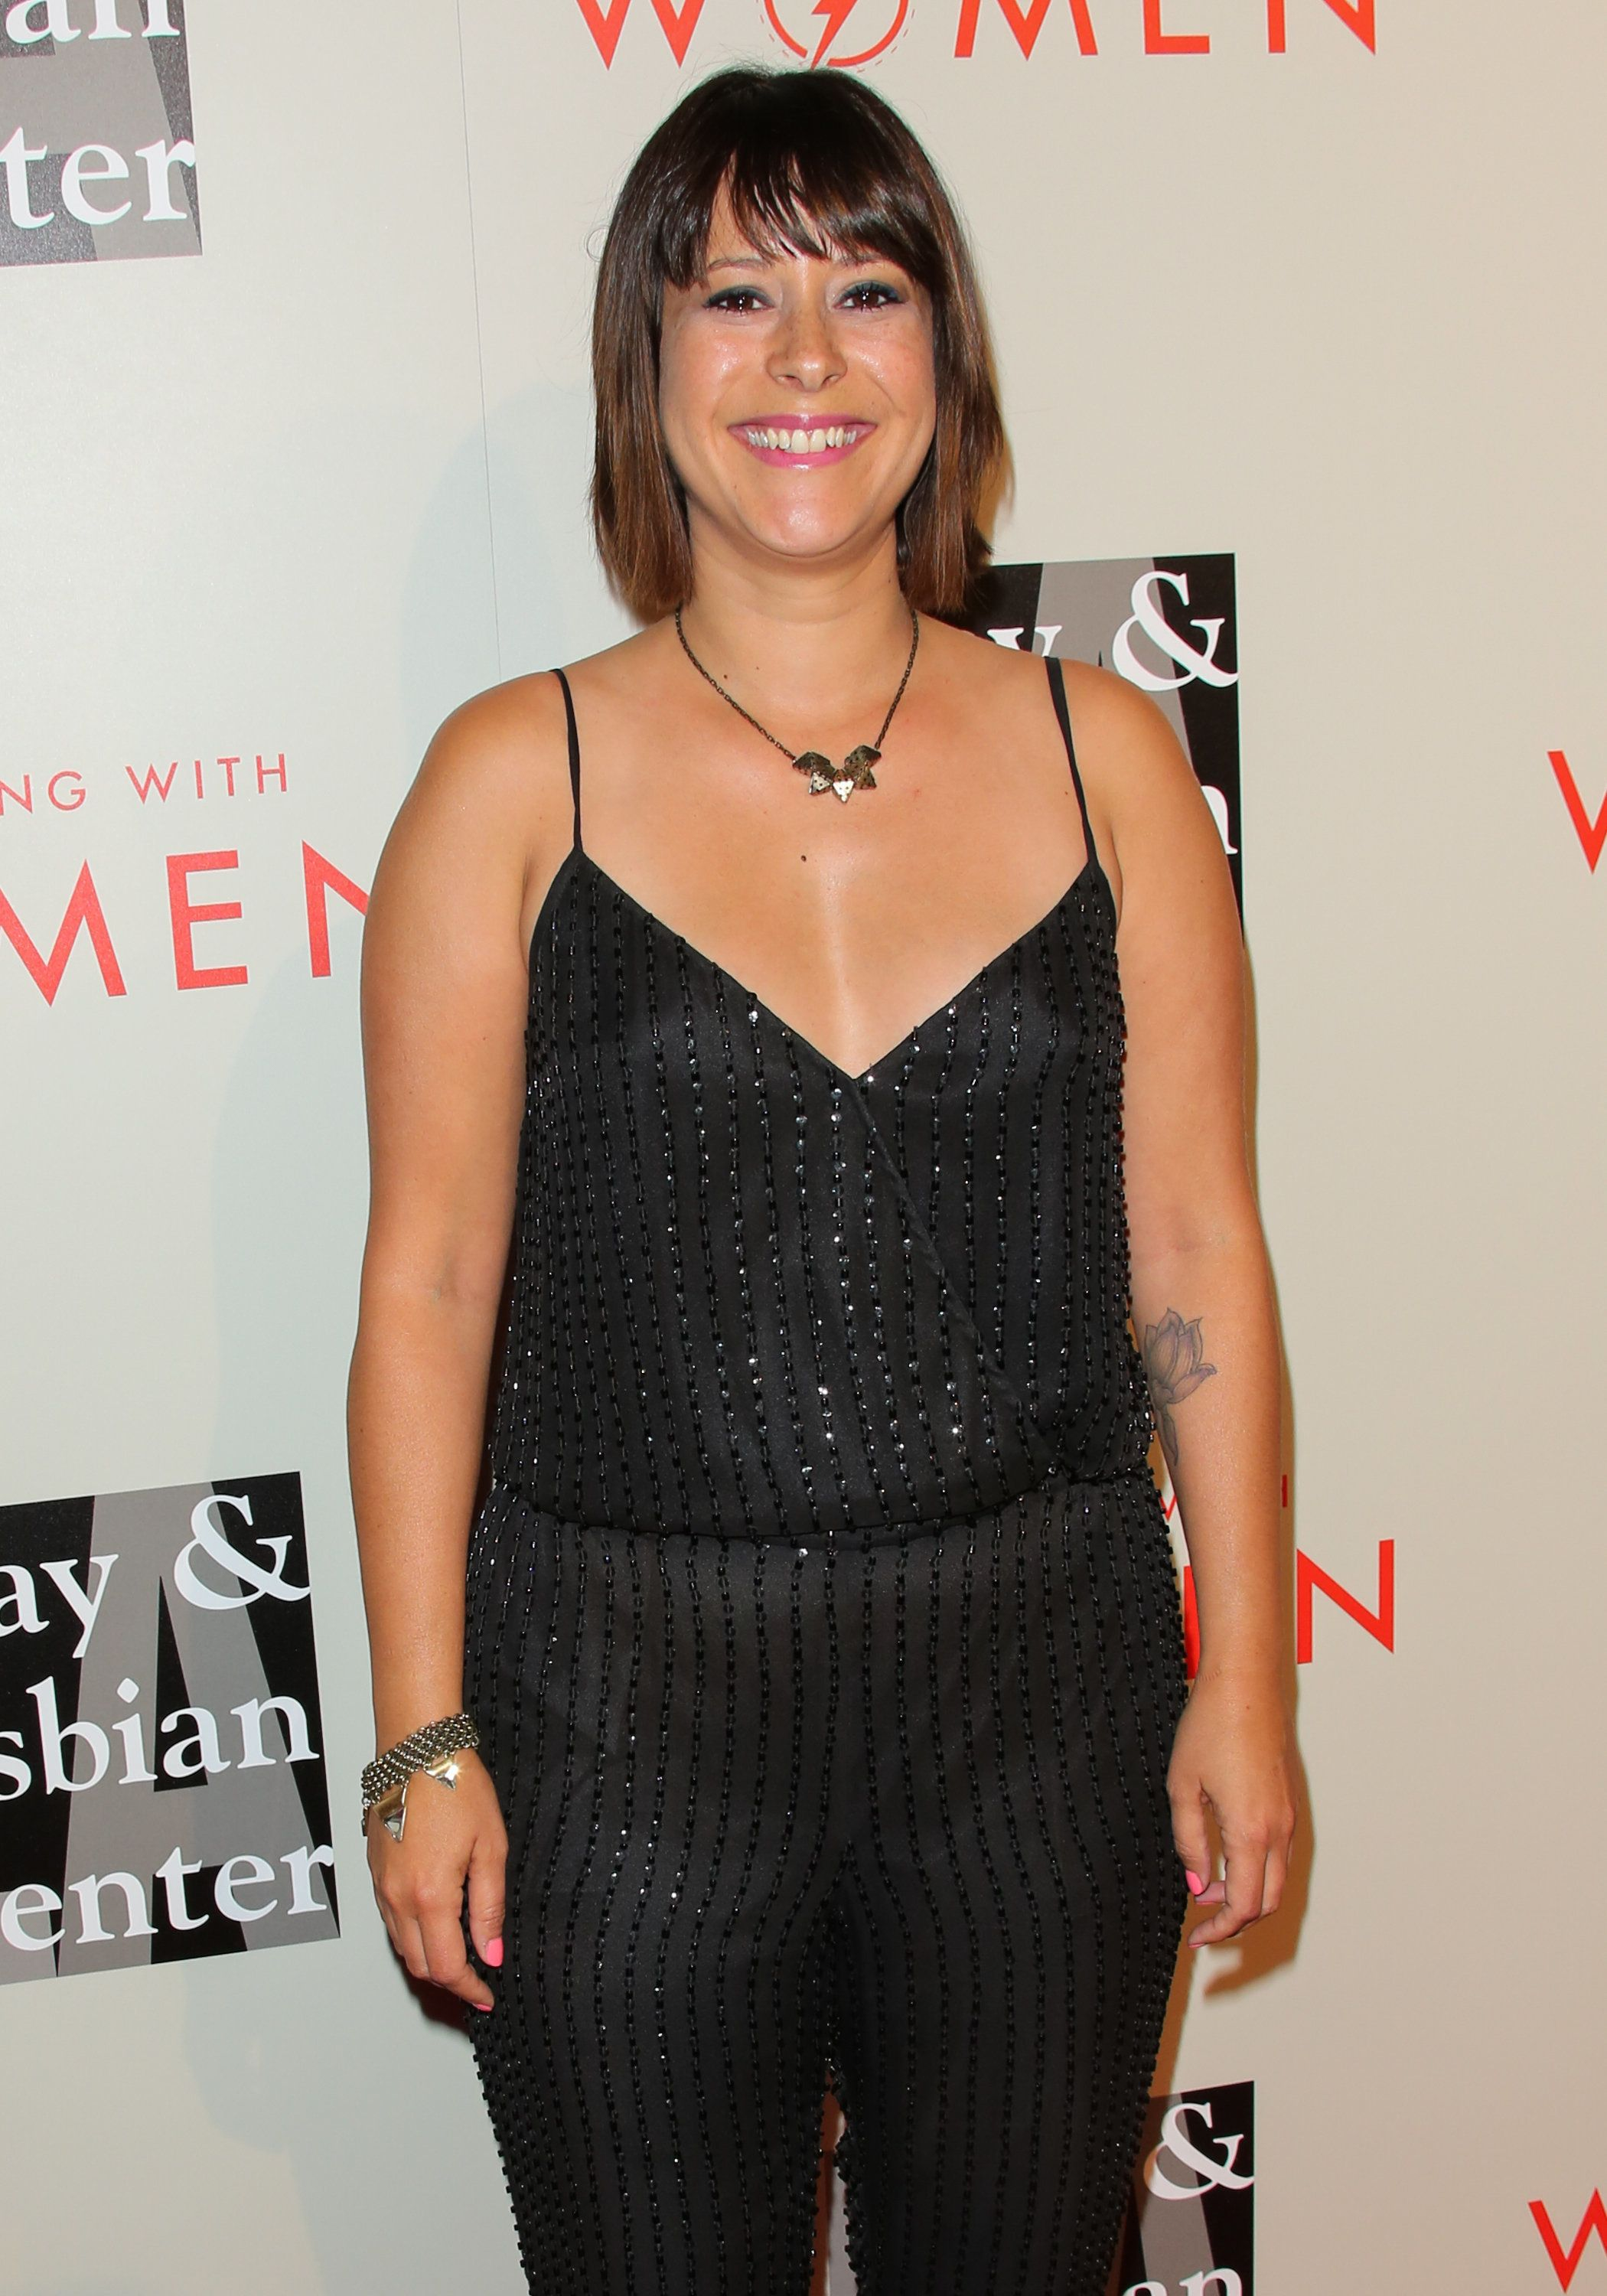 BEVERLY HILLS, CA - MAY 10:  Actress Kimberly McCullough attends the L.A. Gay & Lesbian Center's 2014 An Evening With Women at The Beverly Hilton Hotel on May 10, 2014 in Beverly Hills, California.  (Photo by Paul Archuleta/FilmMagic)